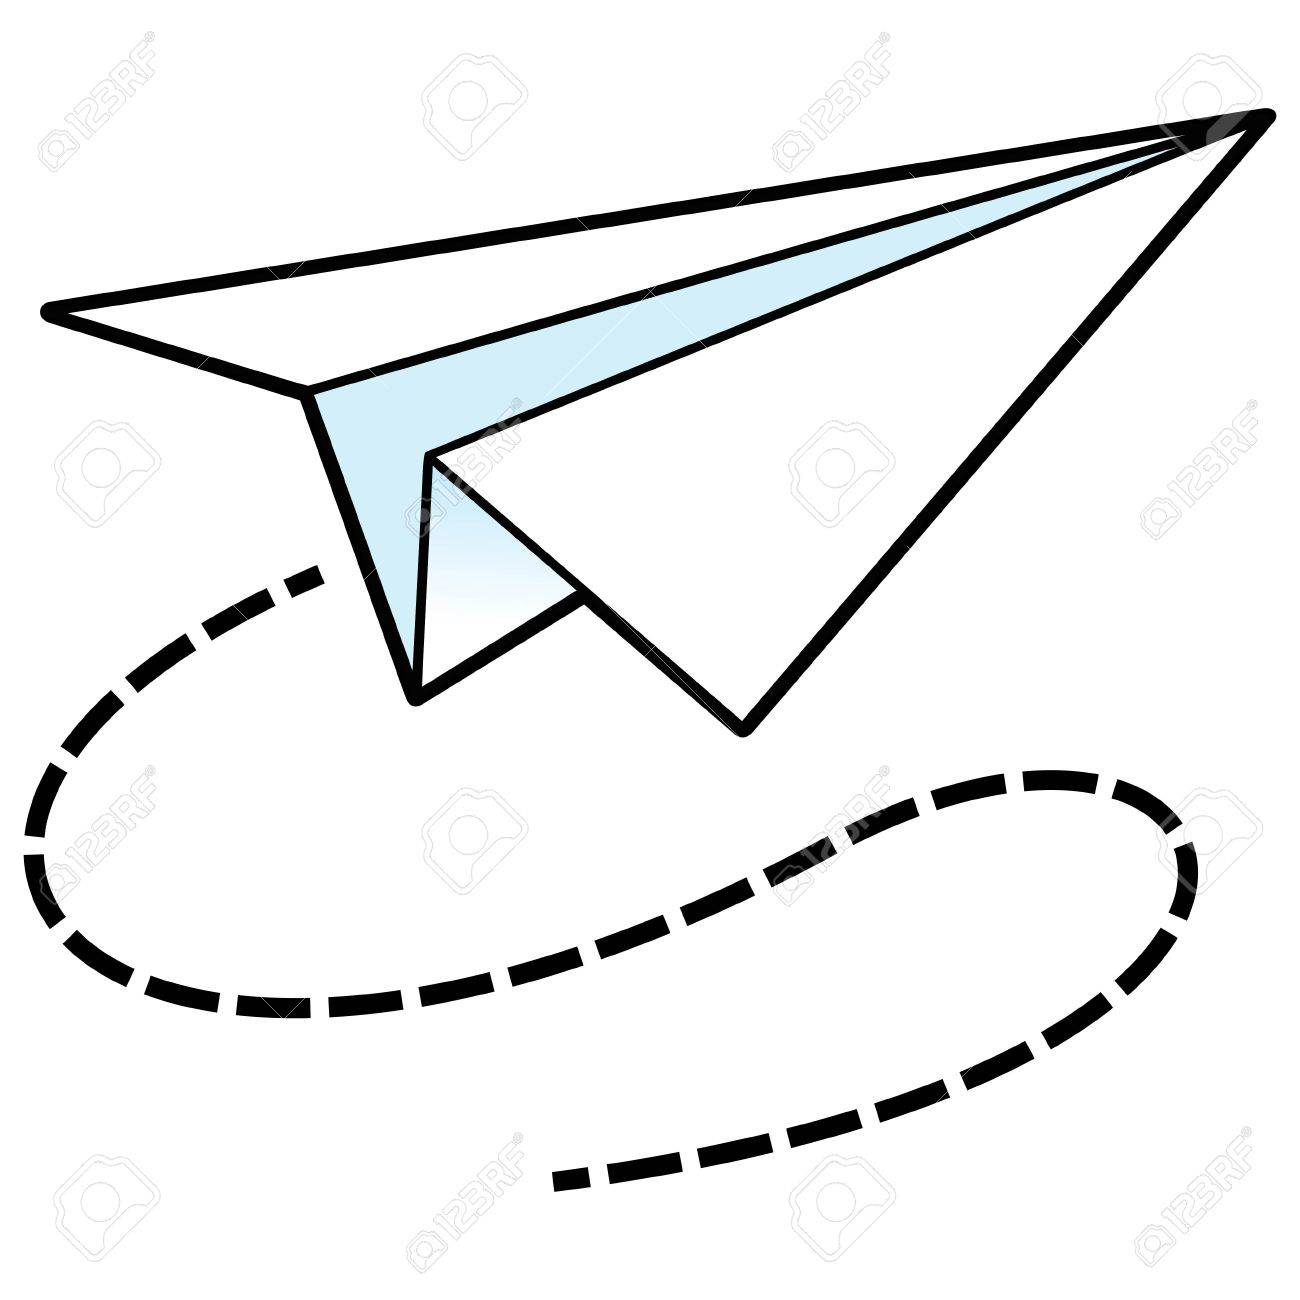 paper airplane icon royalty free cliparts vectors and stock rh 123rf com paper airplane vector graphic free paper airplane vector free download